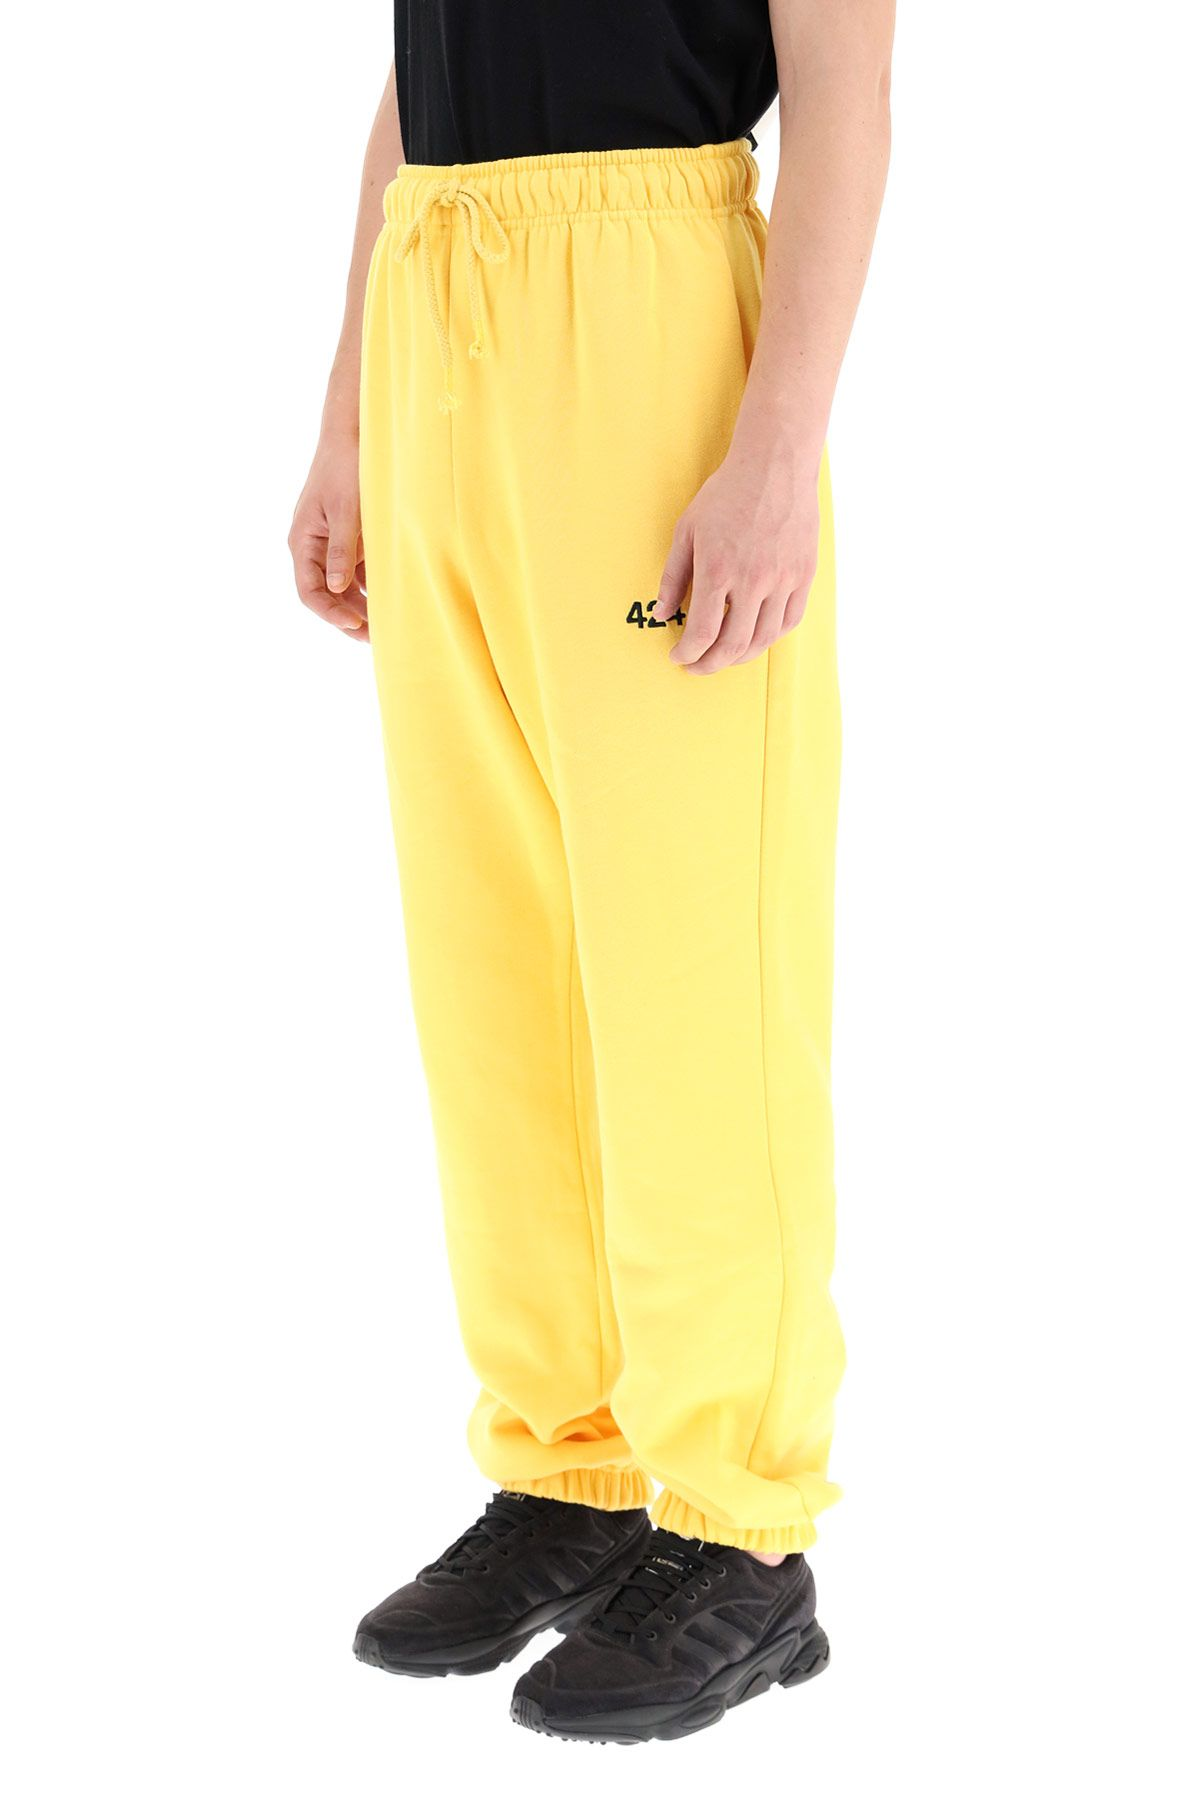 424 clothing men sweatpants with logo embroidery